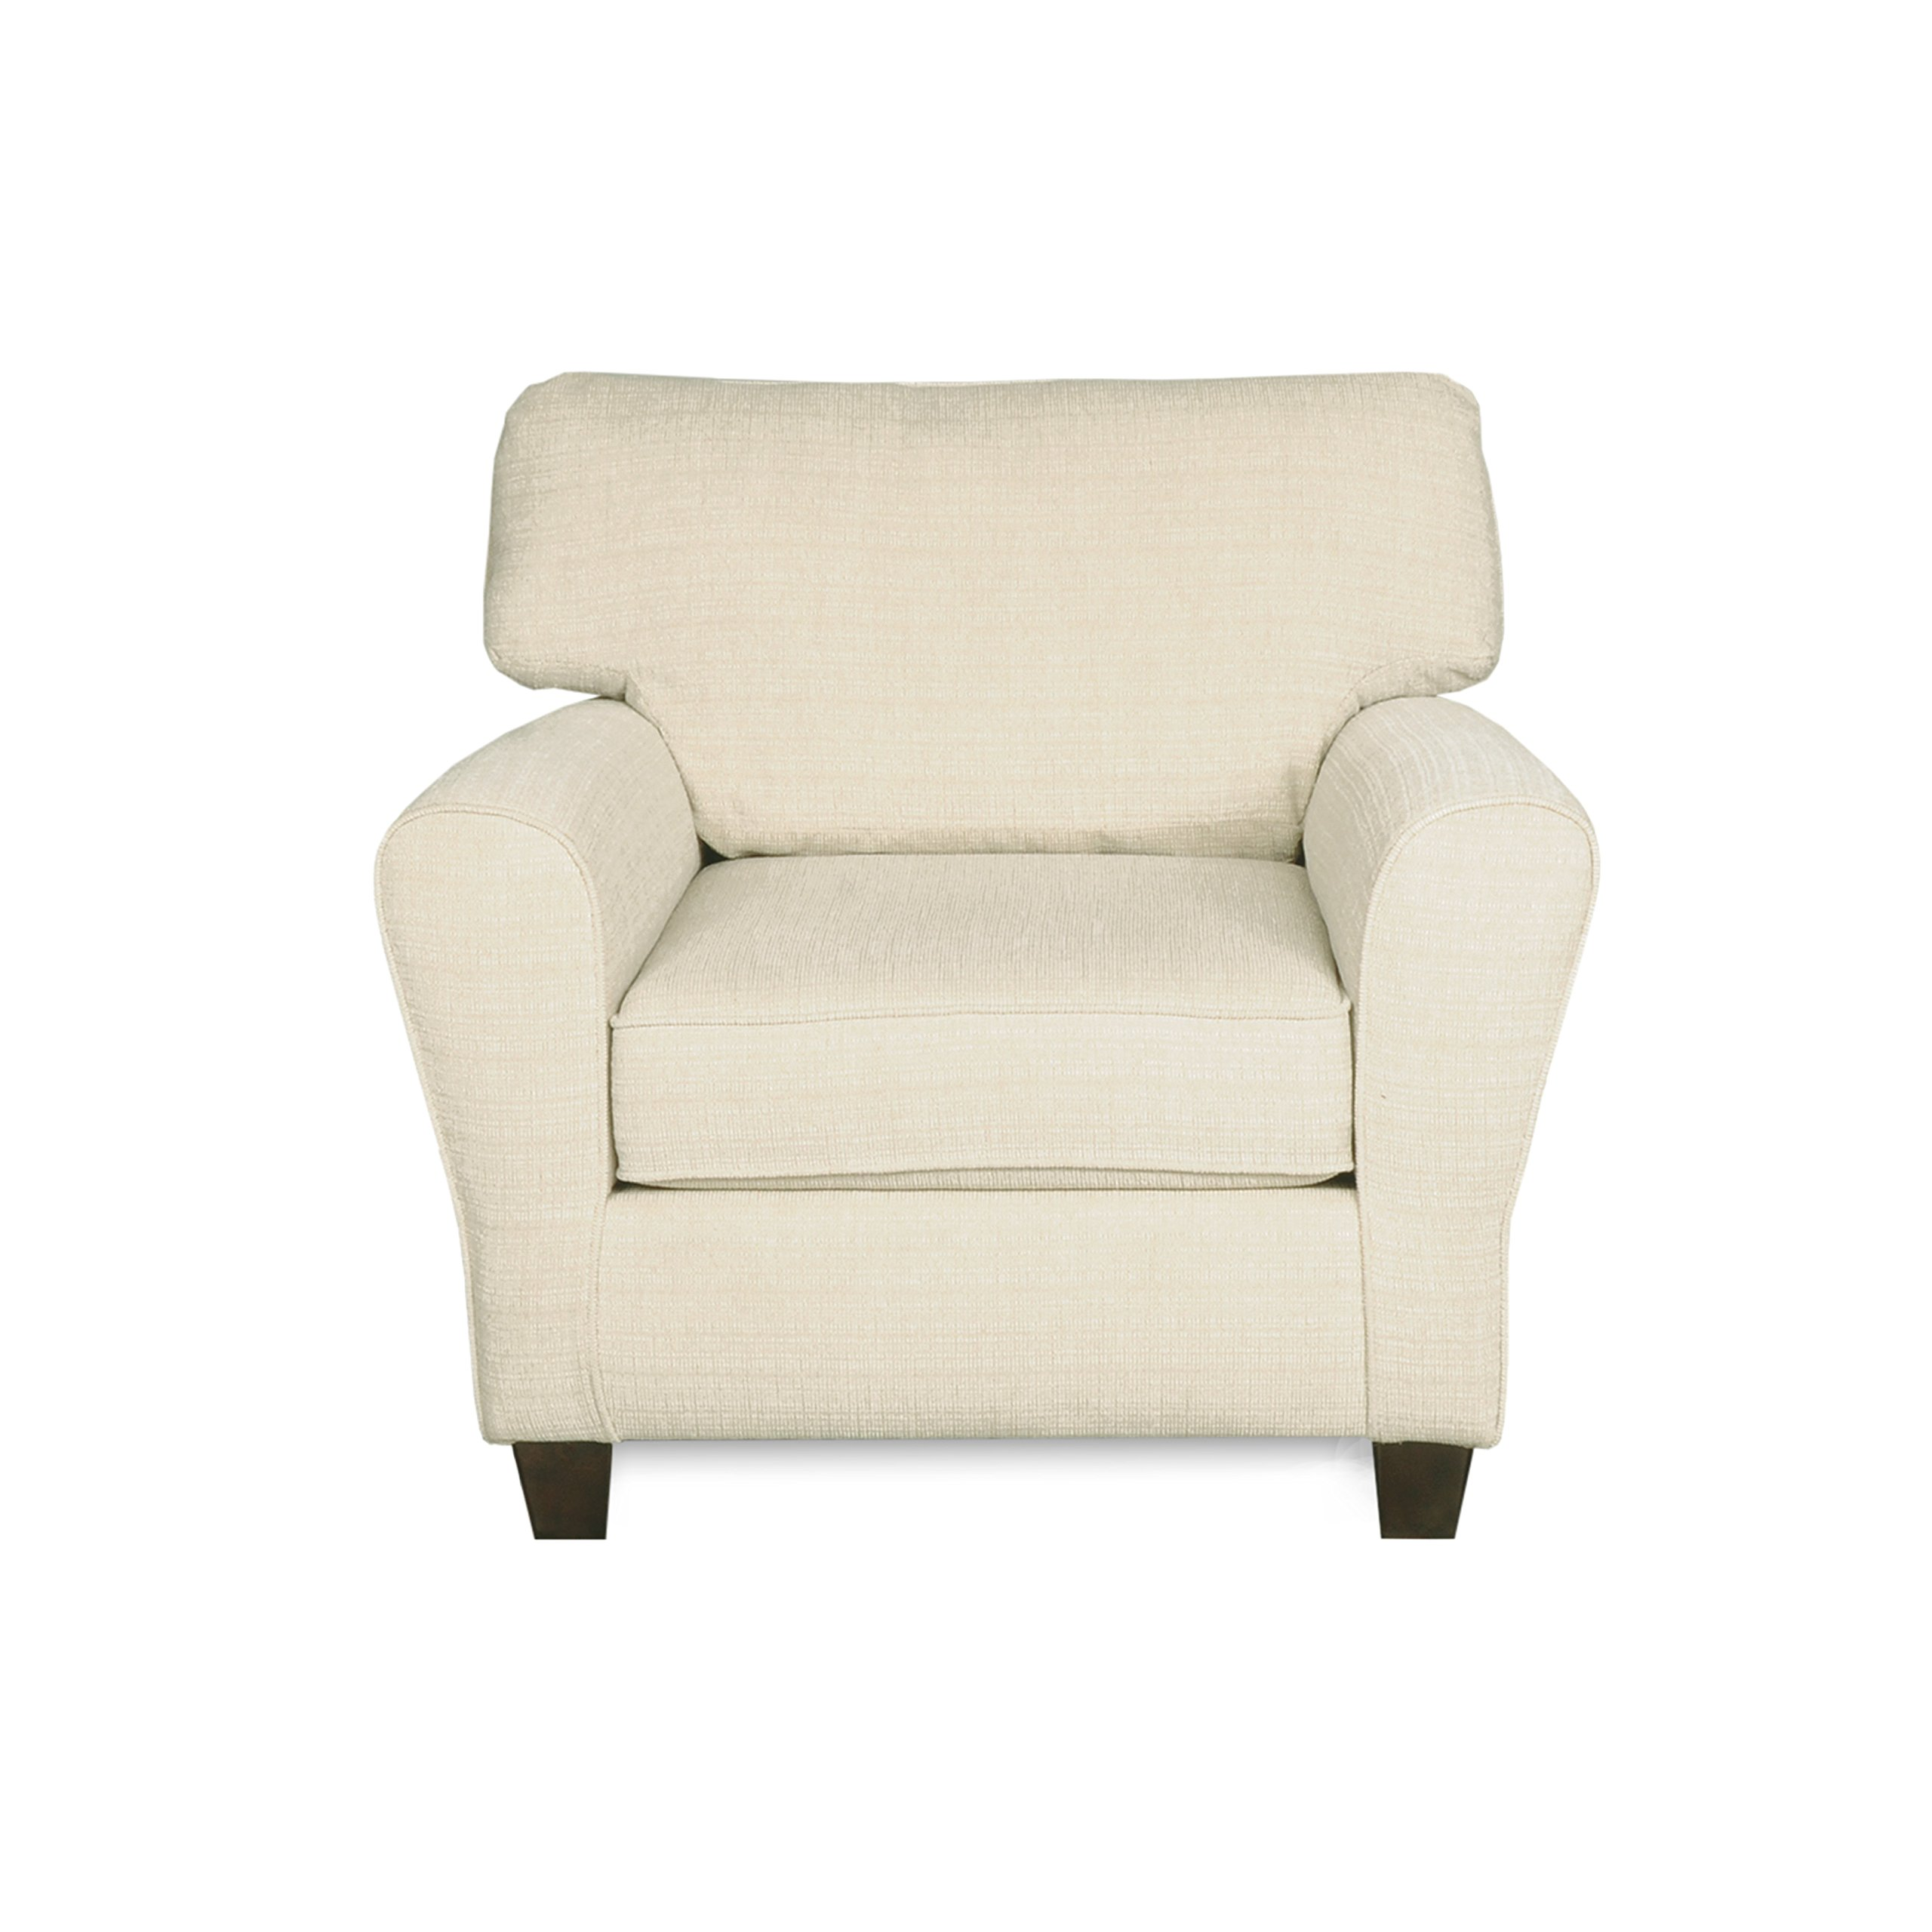 """Dynasty Cream Fabric Armchair with Tool-Free Assembly & 1-Year Warranty 